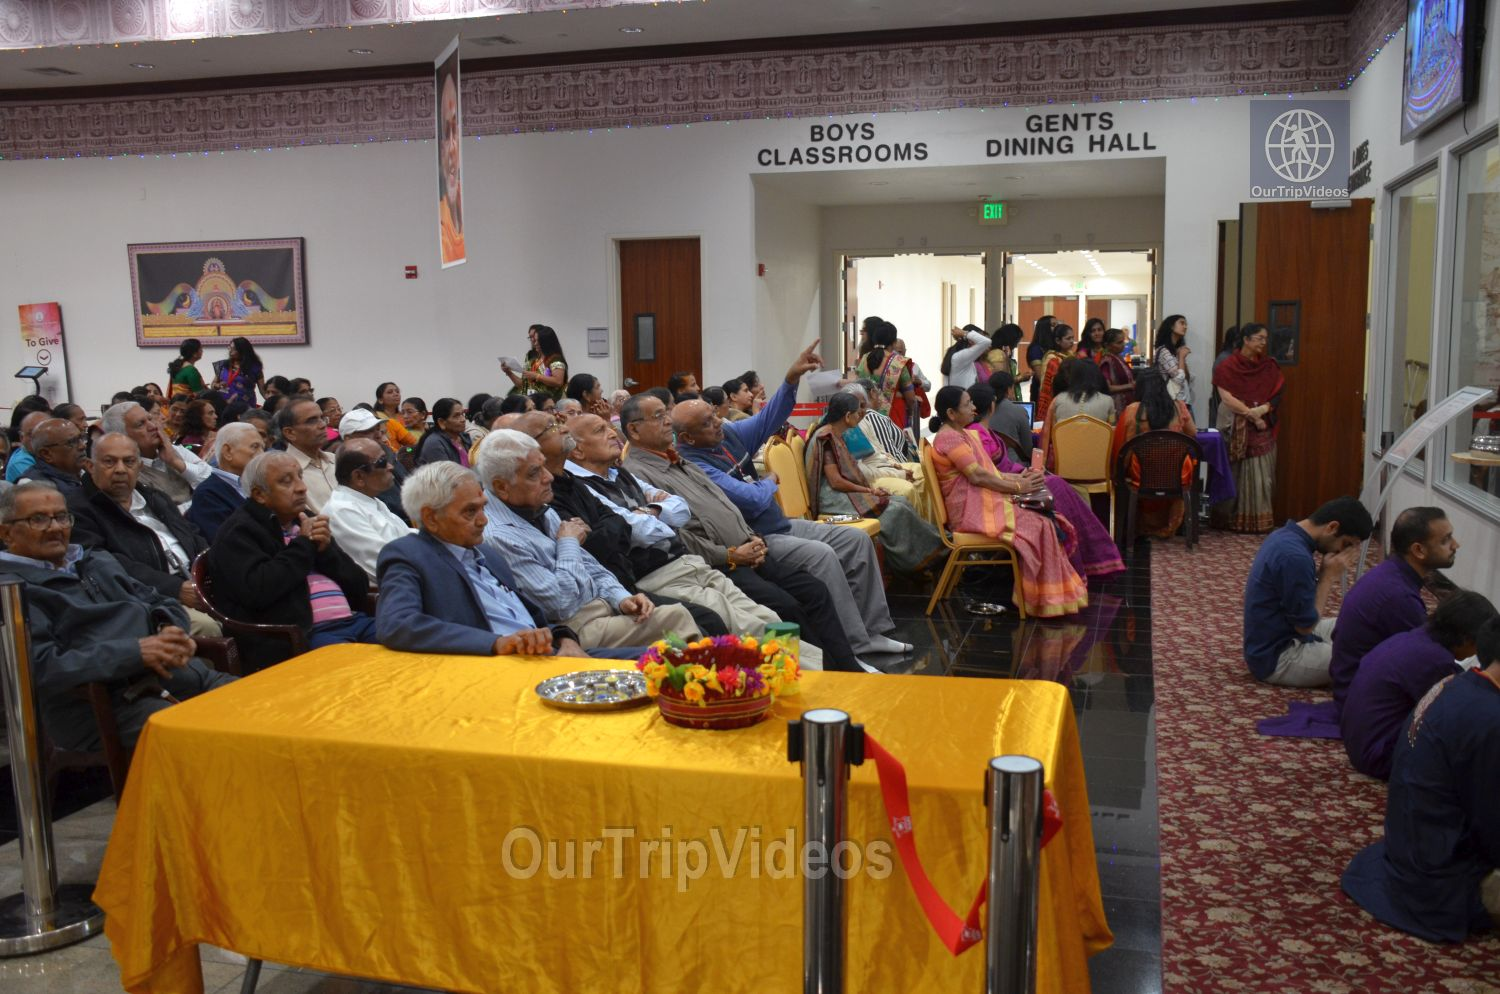 Diwali Celebrations at BAPS Swaminarayan Temple, Milpitas, CA, USA - Picture 10 of 25